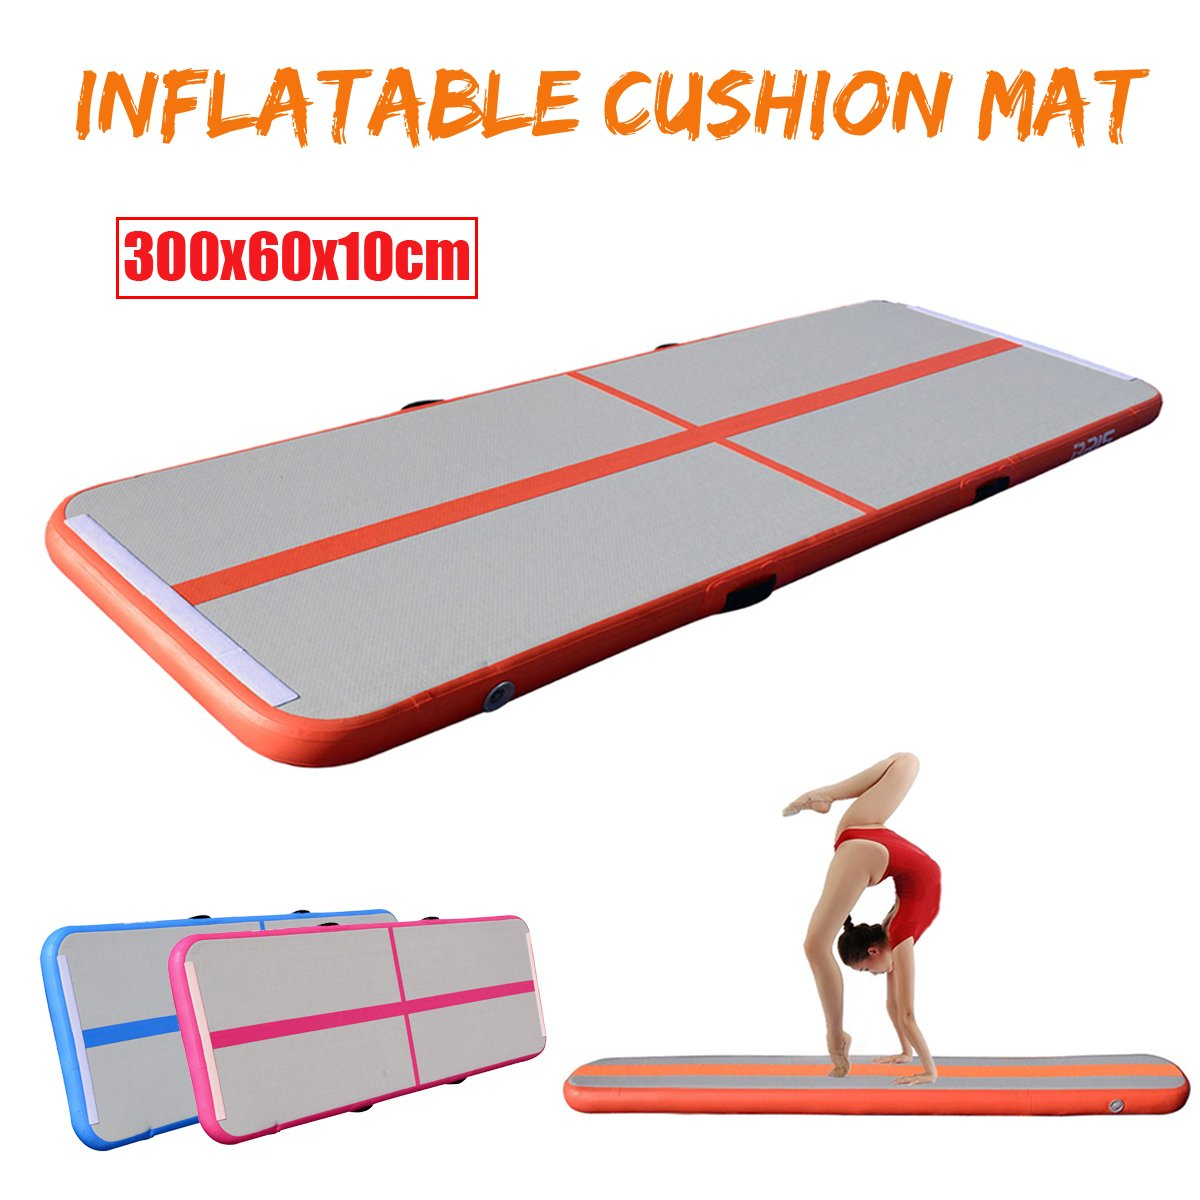 Parkour Yoga COSTWAY 1M Air Track Tumbling Mat Exercise Fitness Mat for Training D-Shaped Rings /& Repair Kit Inflatable Gymnastics Mat with Air Pump Cheerleading Indoor /& Outdoor Use